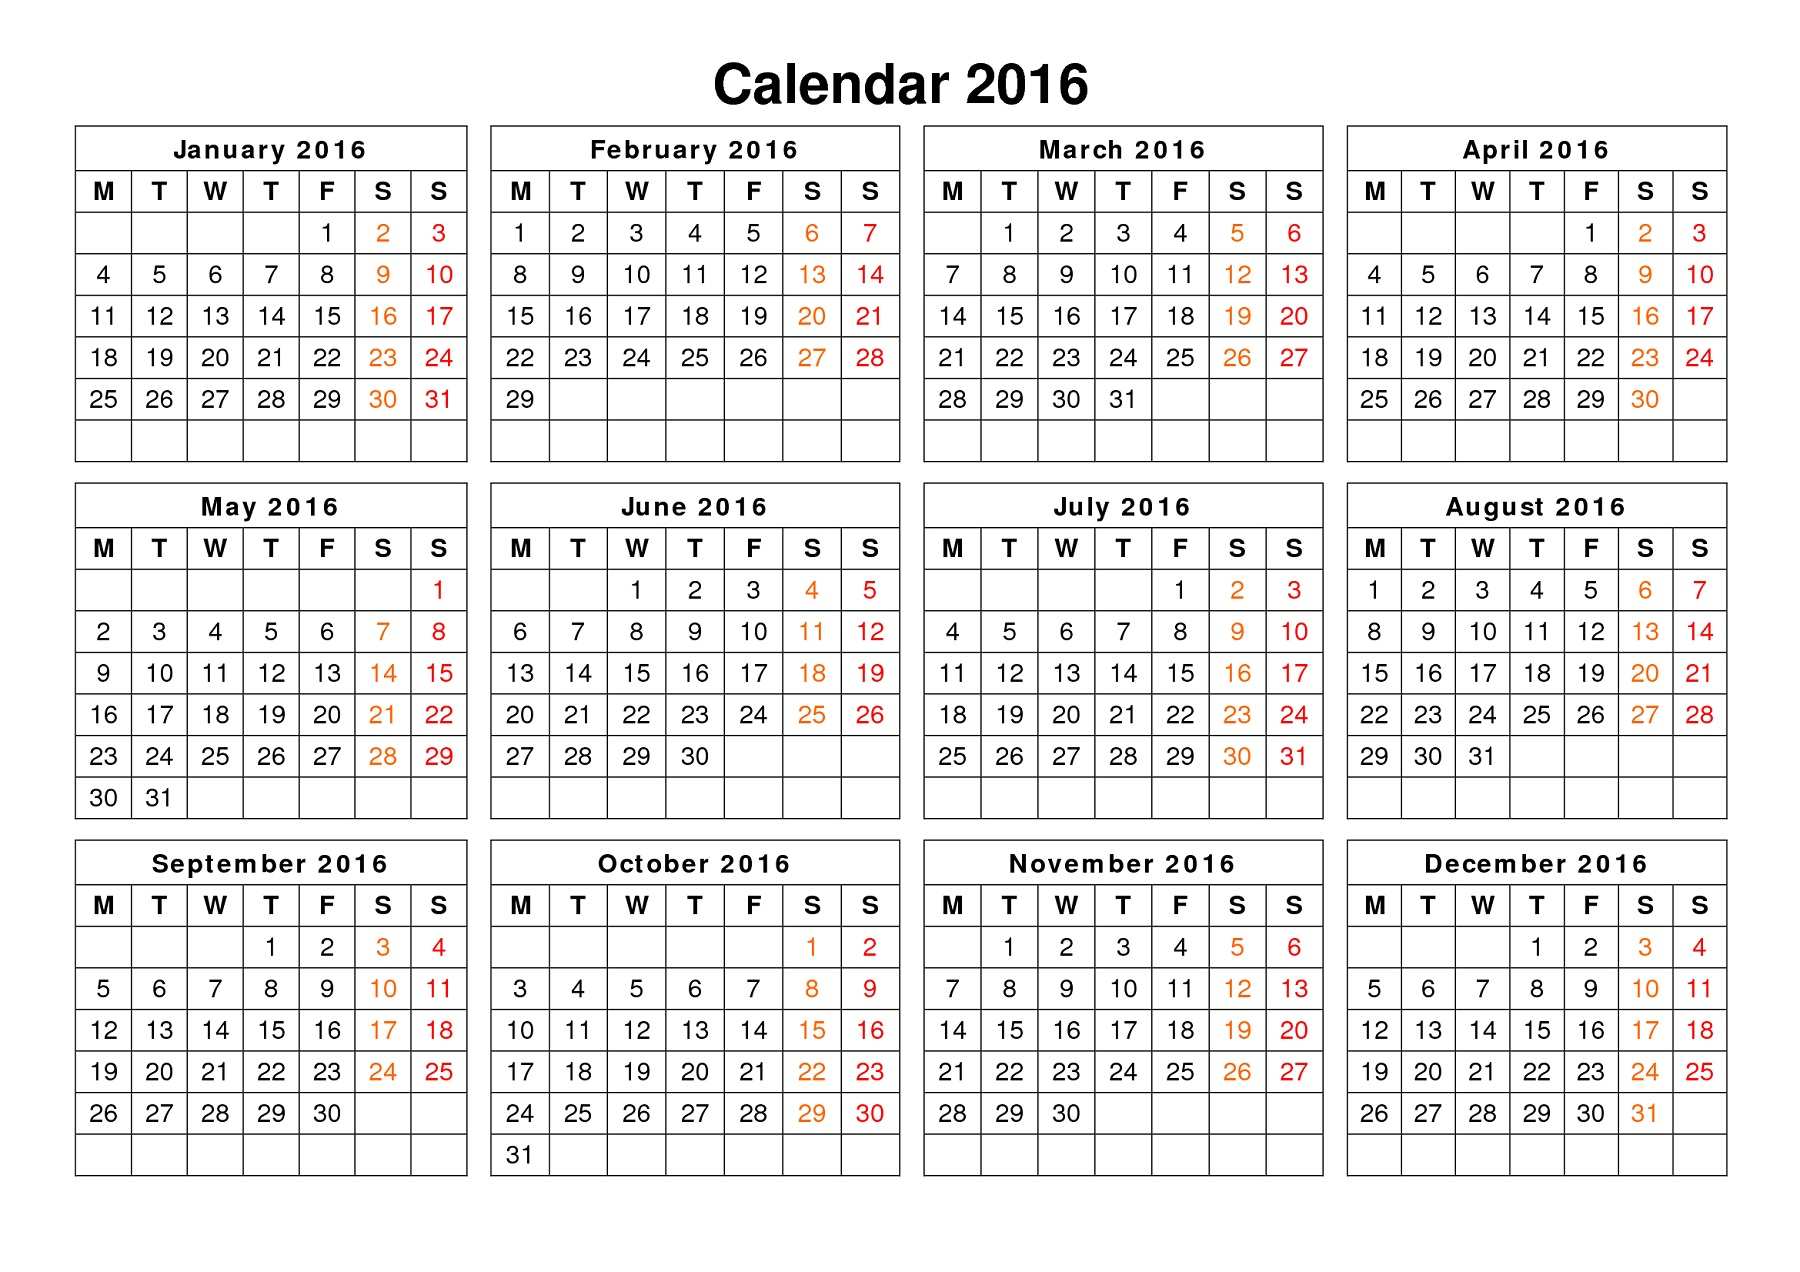 Calendar Printable One Page | Search Results | 2016 Calendar Printable ...